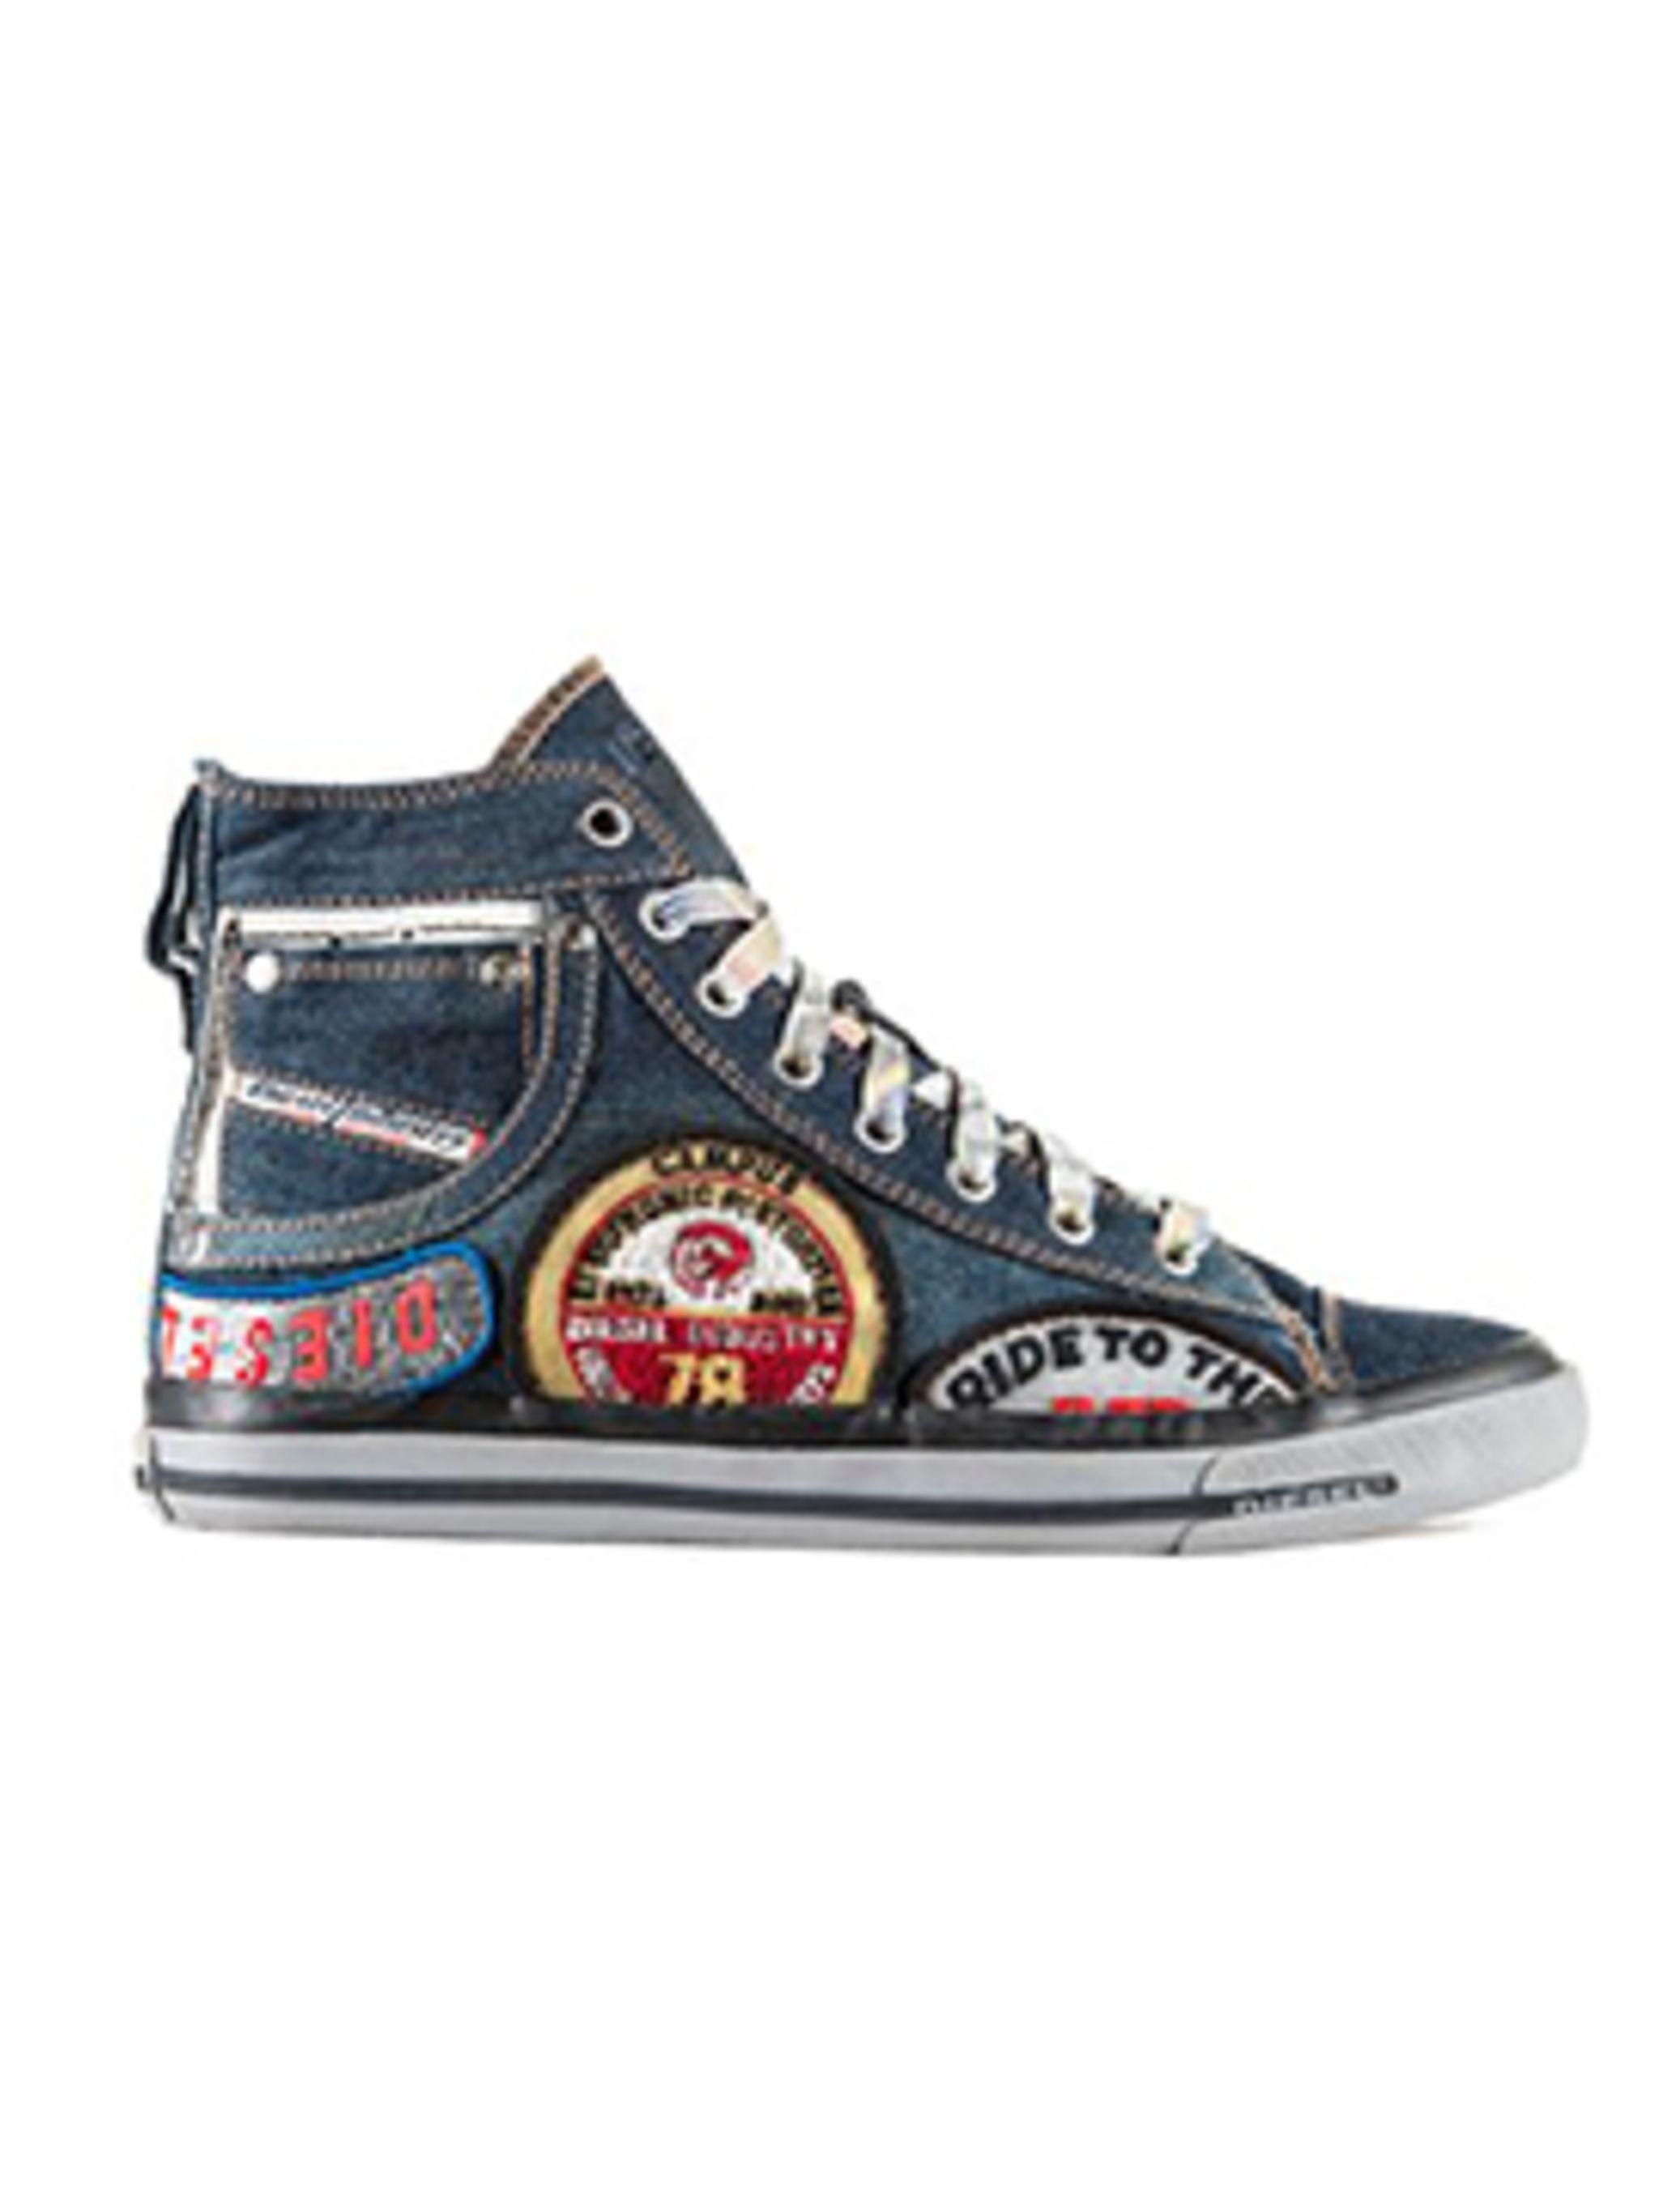 <p>#DieselTribute collection trainer</p>